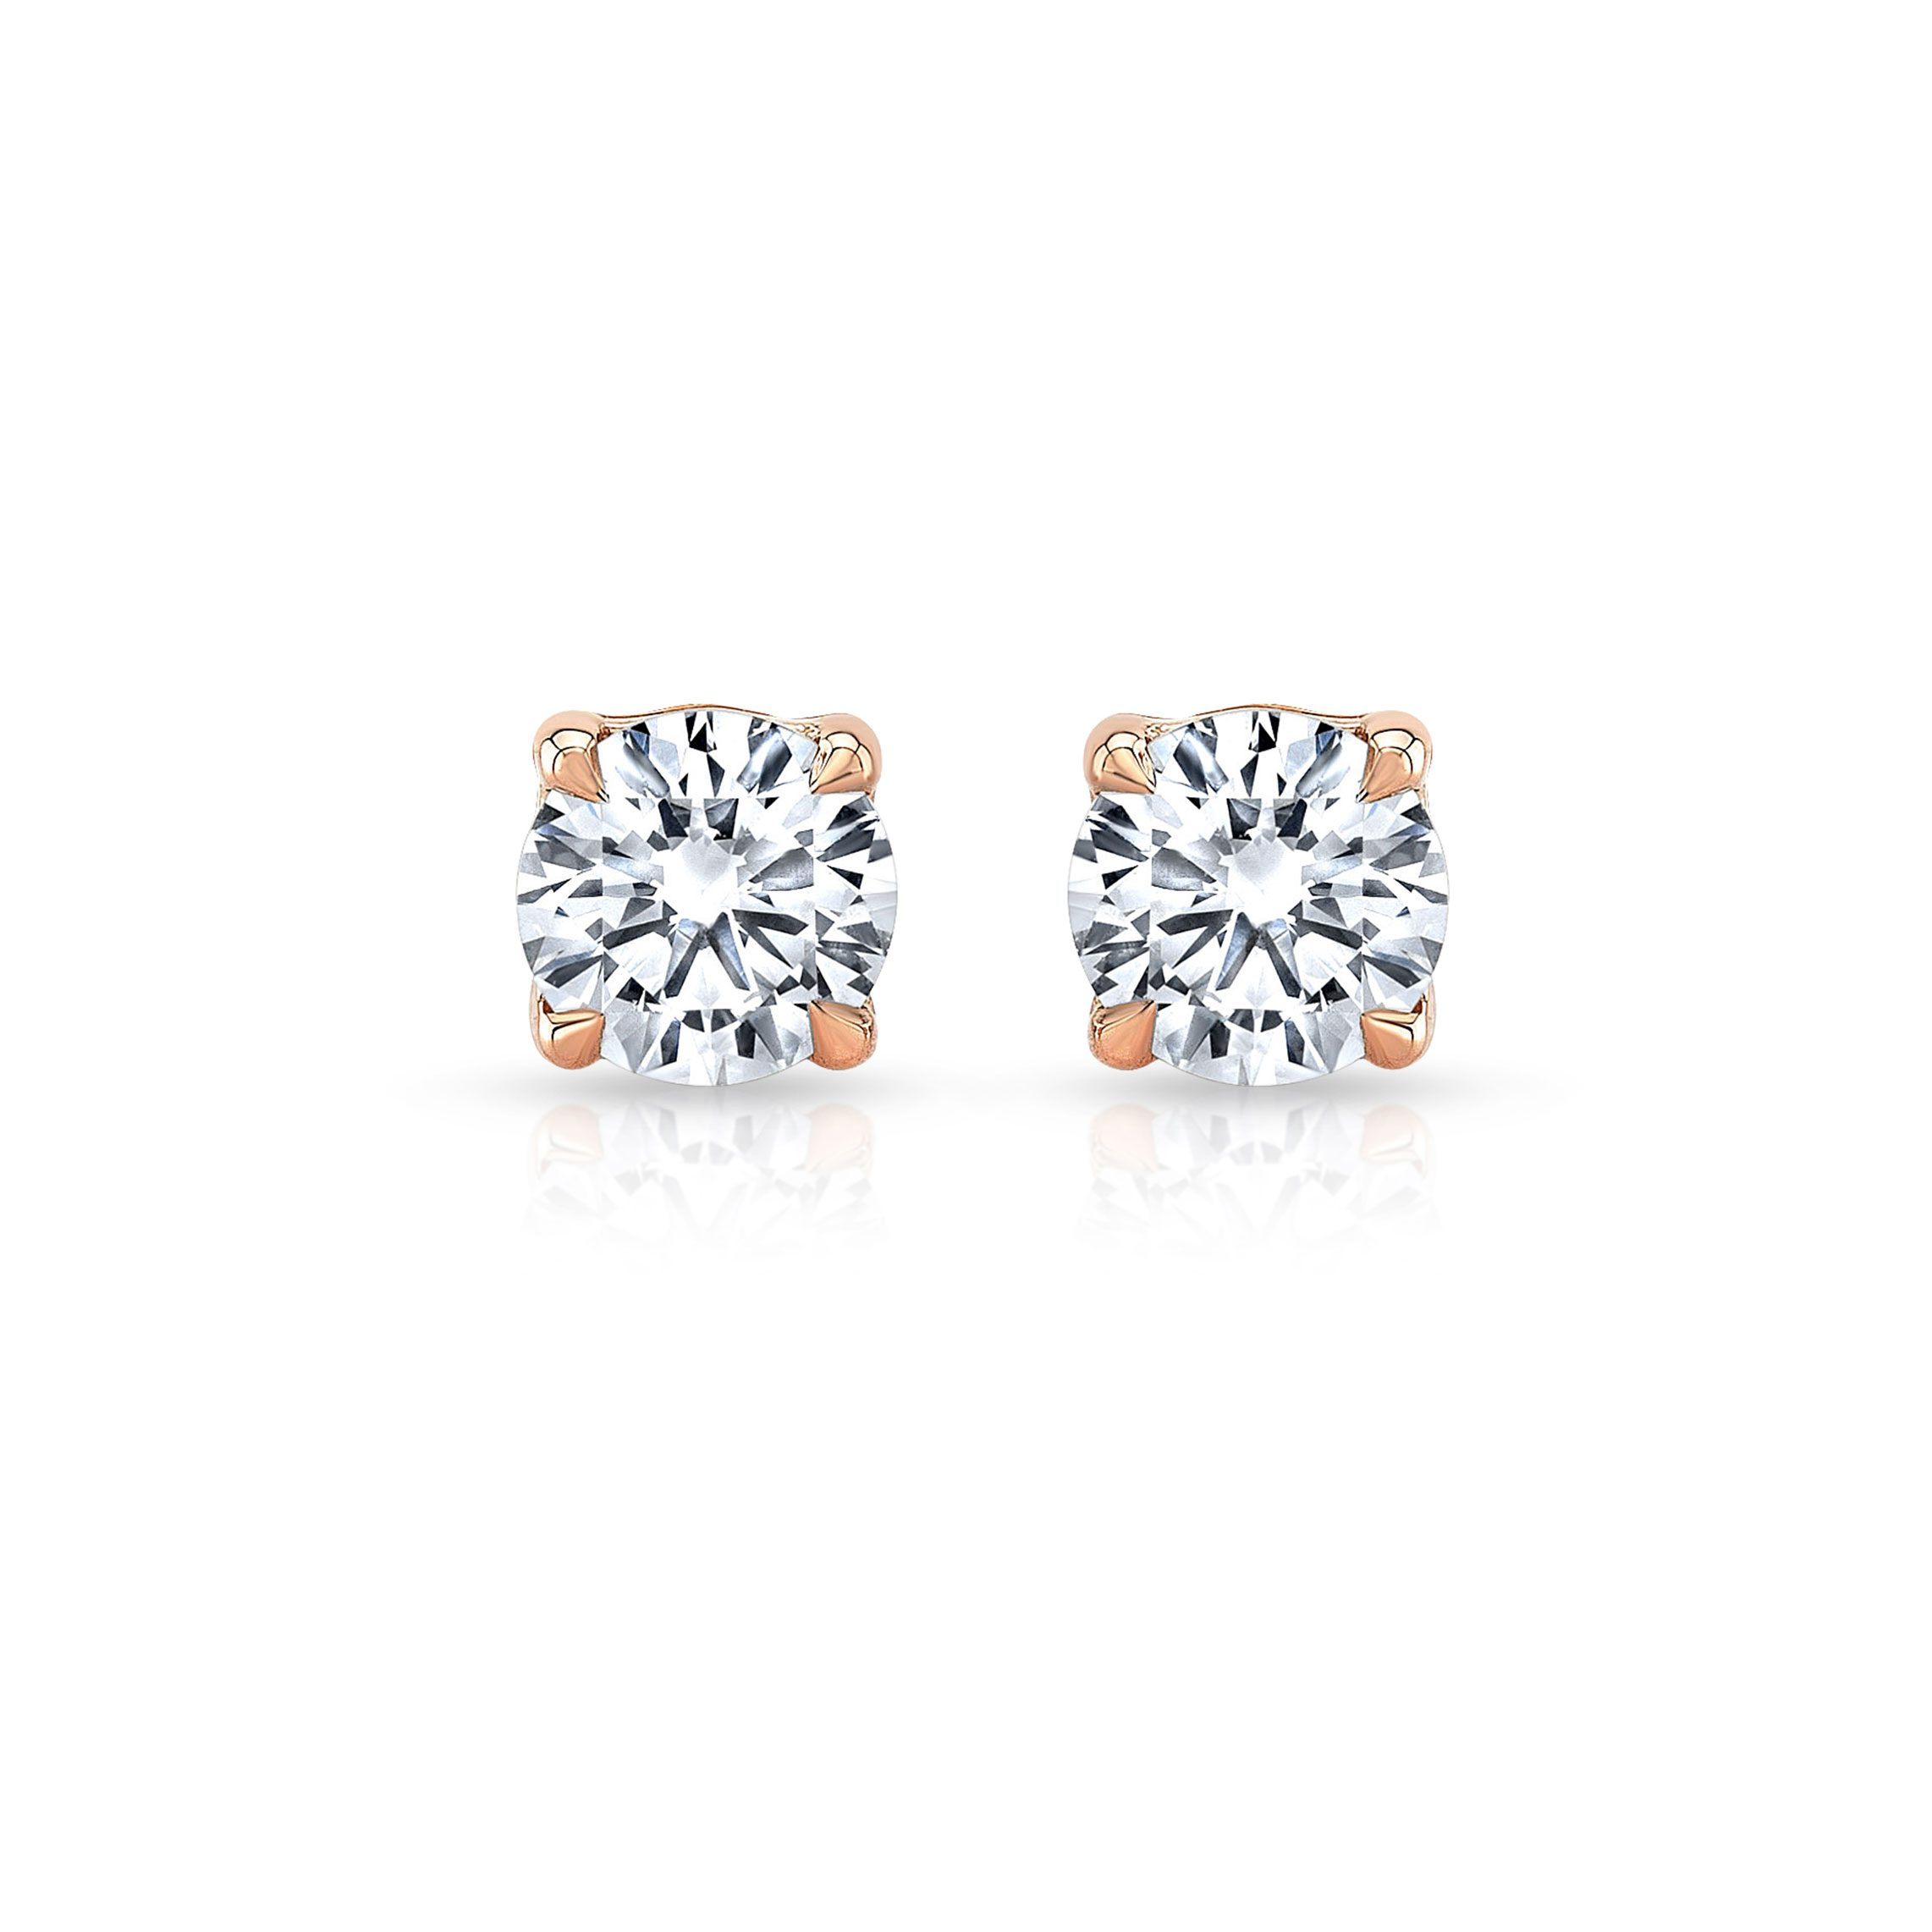 Carlie Round Brilliant Lab Grown Diamond Studs in Rose Gold Product Shot from Oui by Jean Dousset